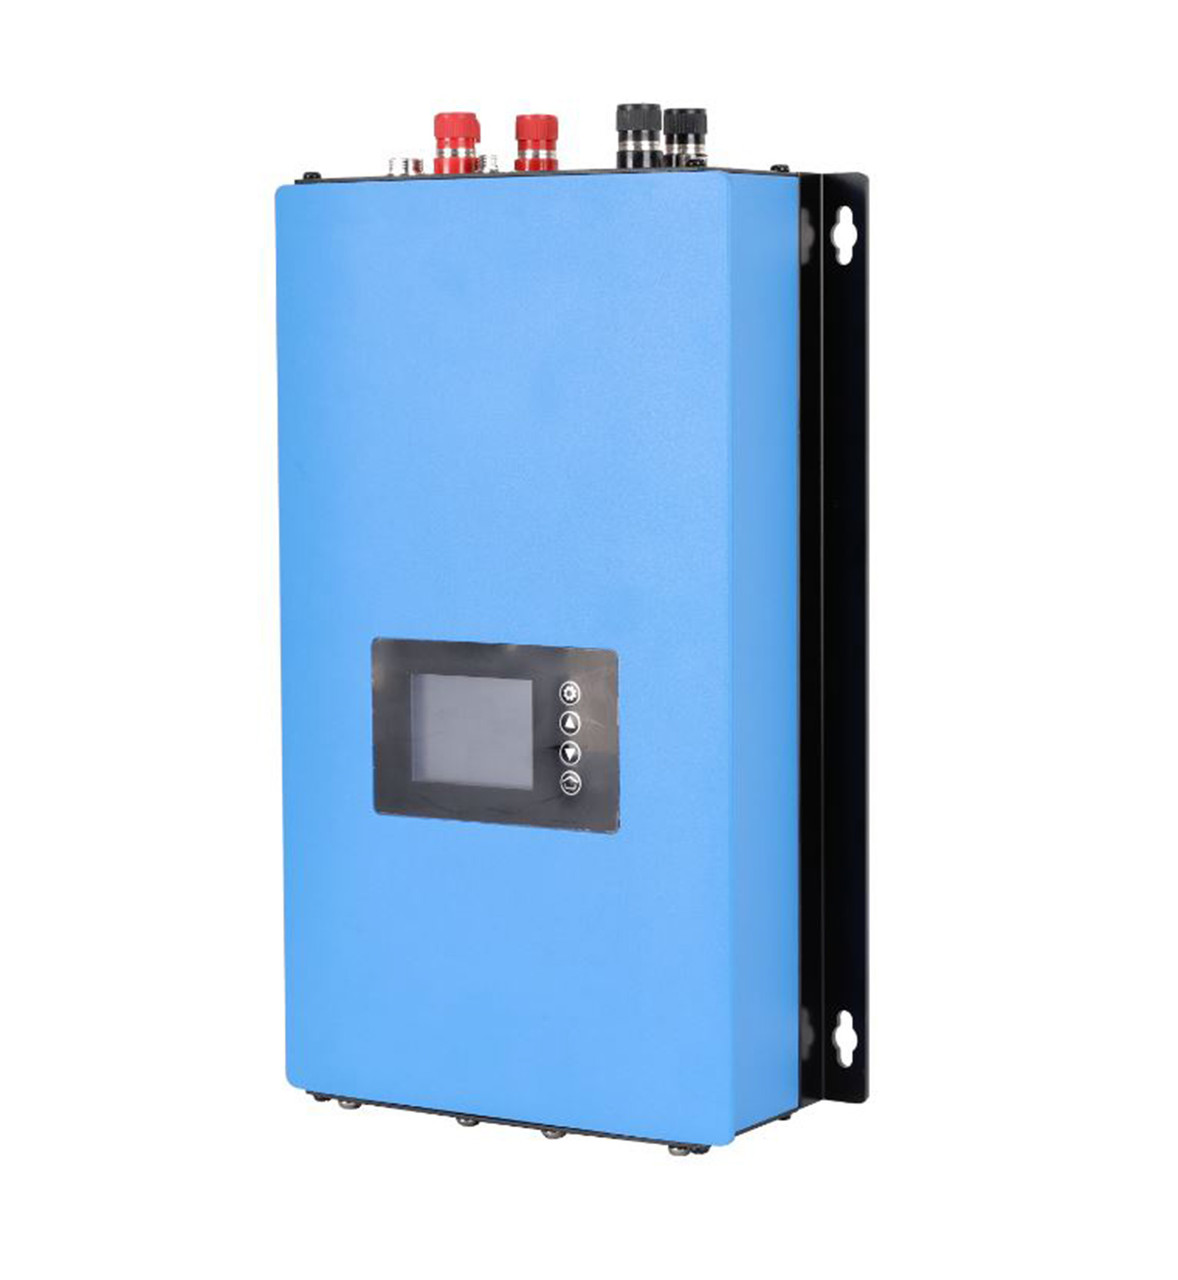 Grid Tie Inverter 1000 Watt with Dump Load for 3 Phase AC Wind Turbine Grid  Tie Inverter 24v 48V Input MPPT Pure Sine Wave